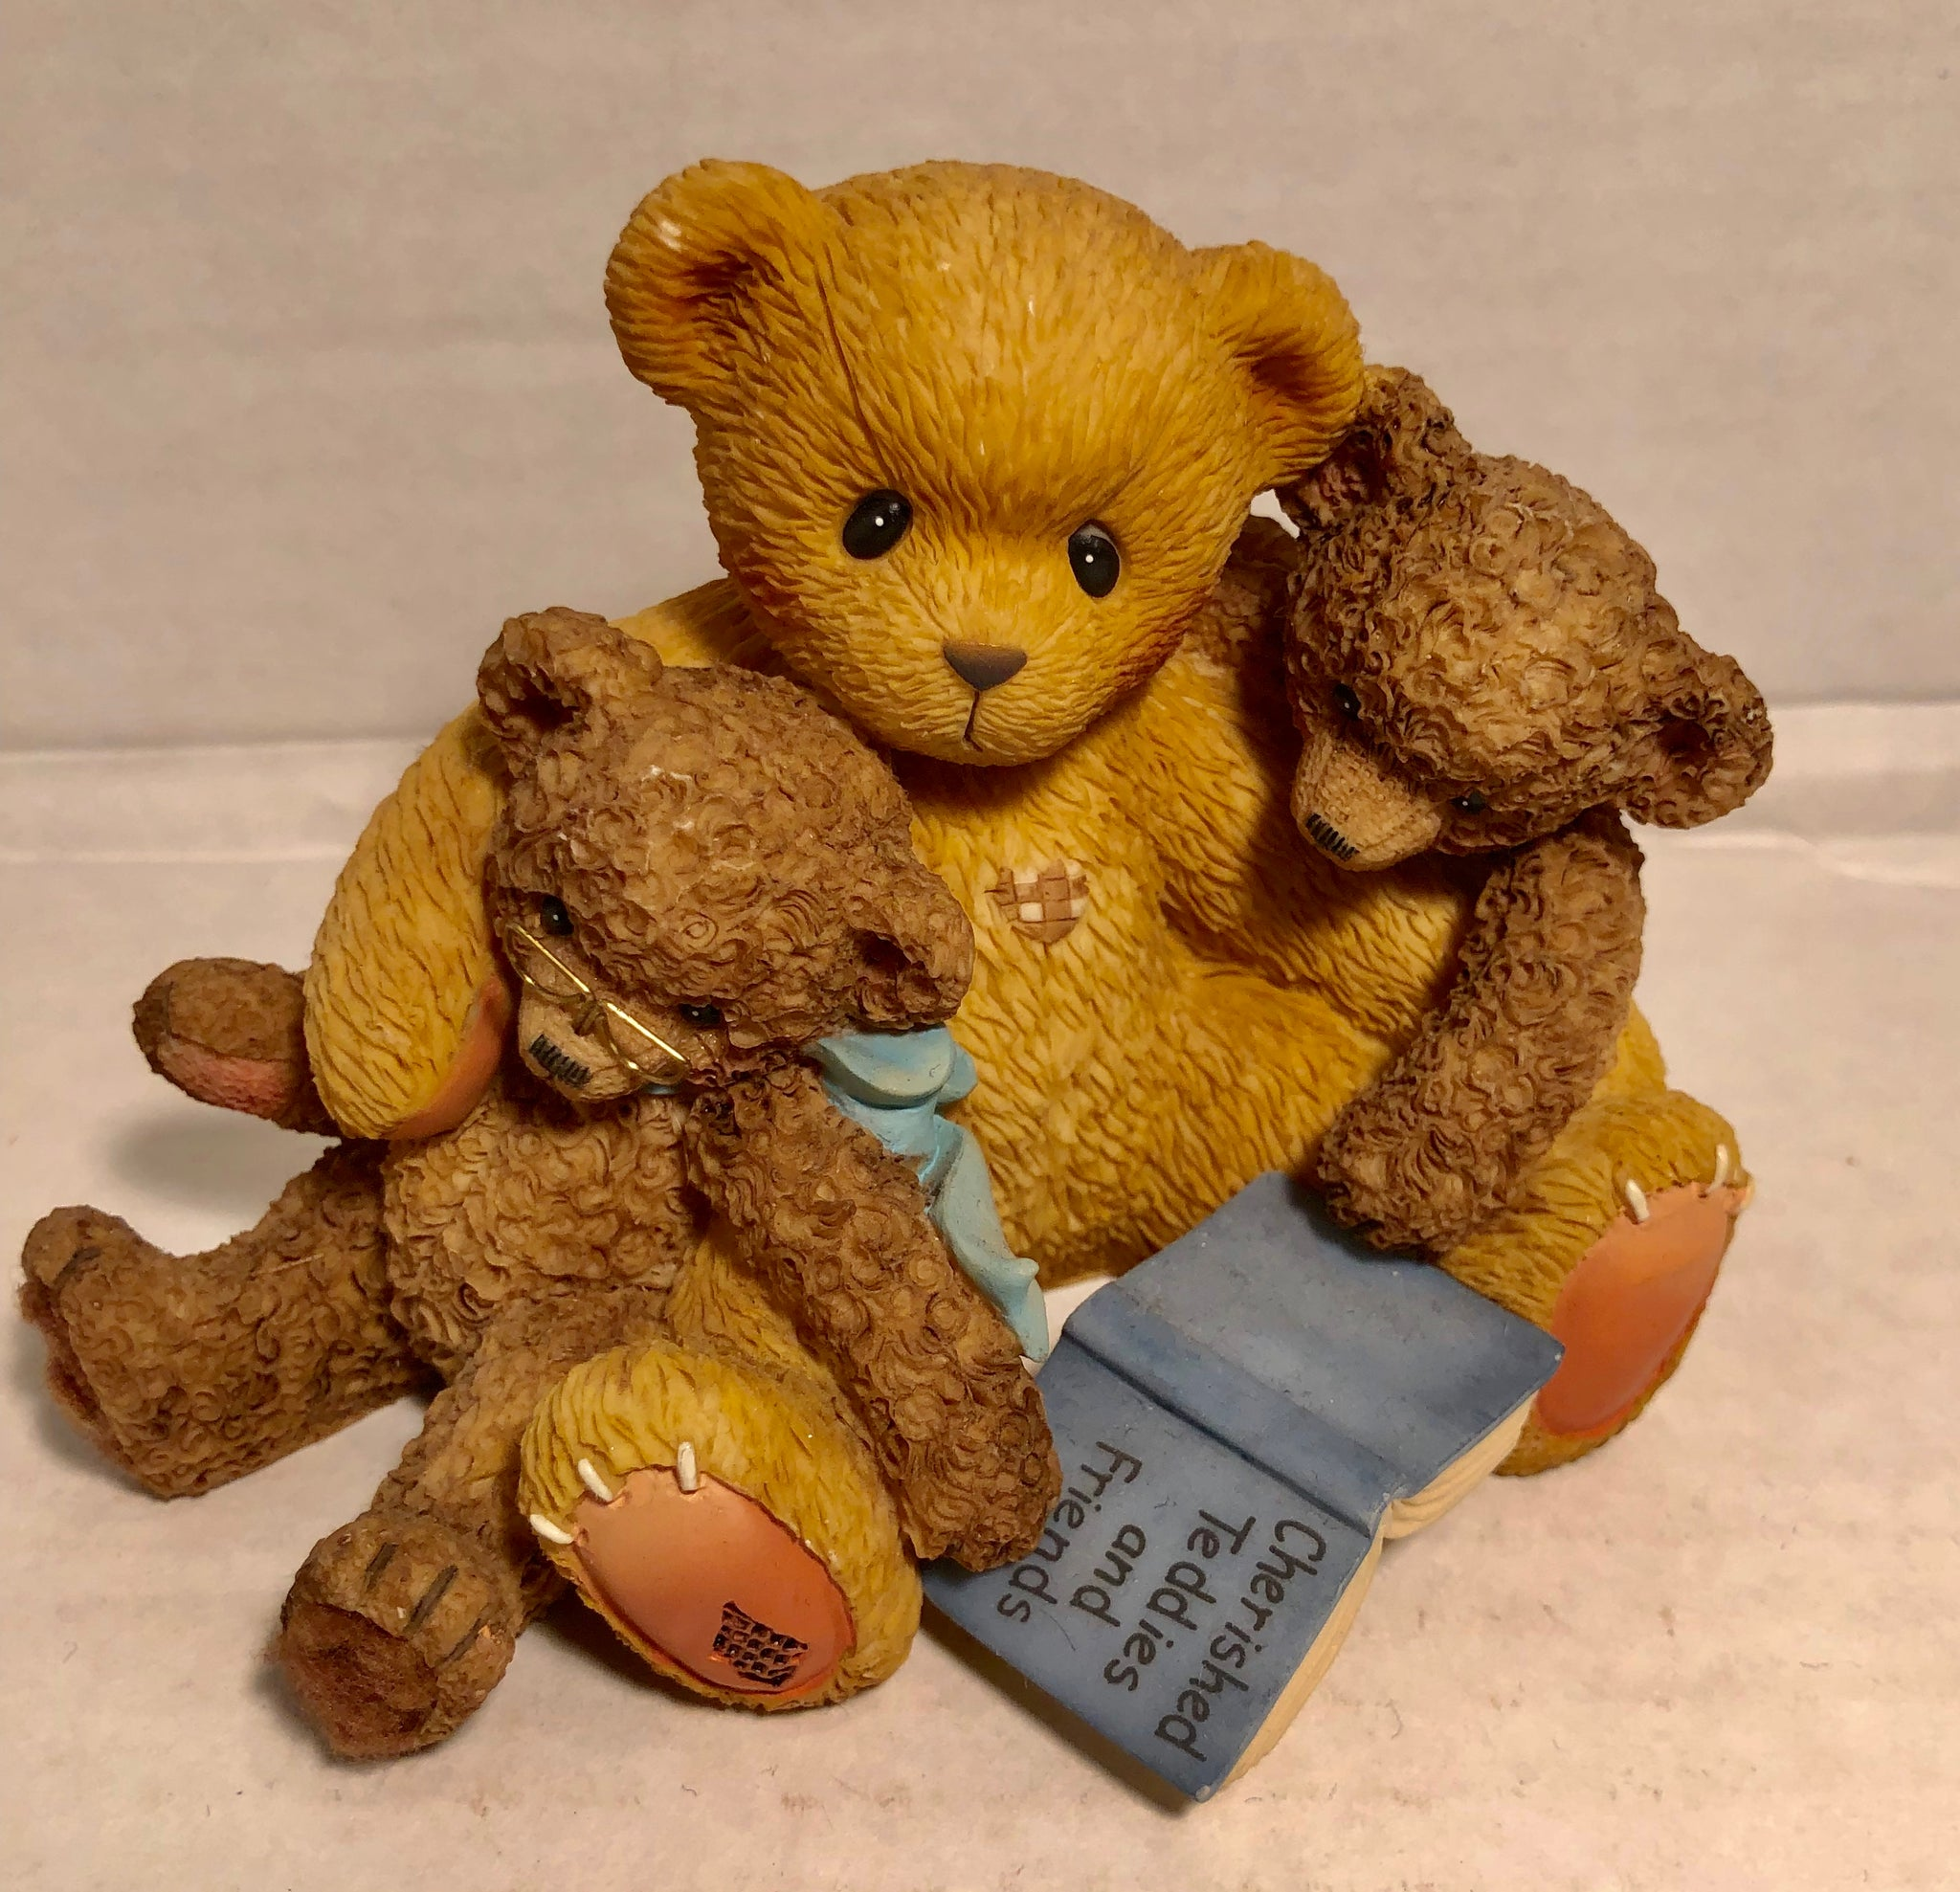 Cherished Teddies 1999 Caleb and Friends When One Lacks Vision Another Must Provide Supervision